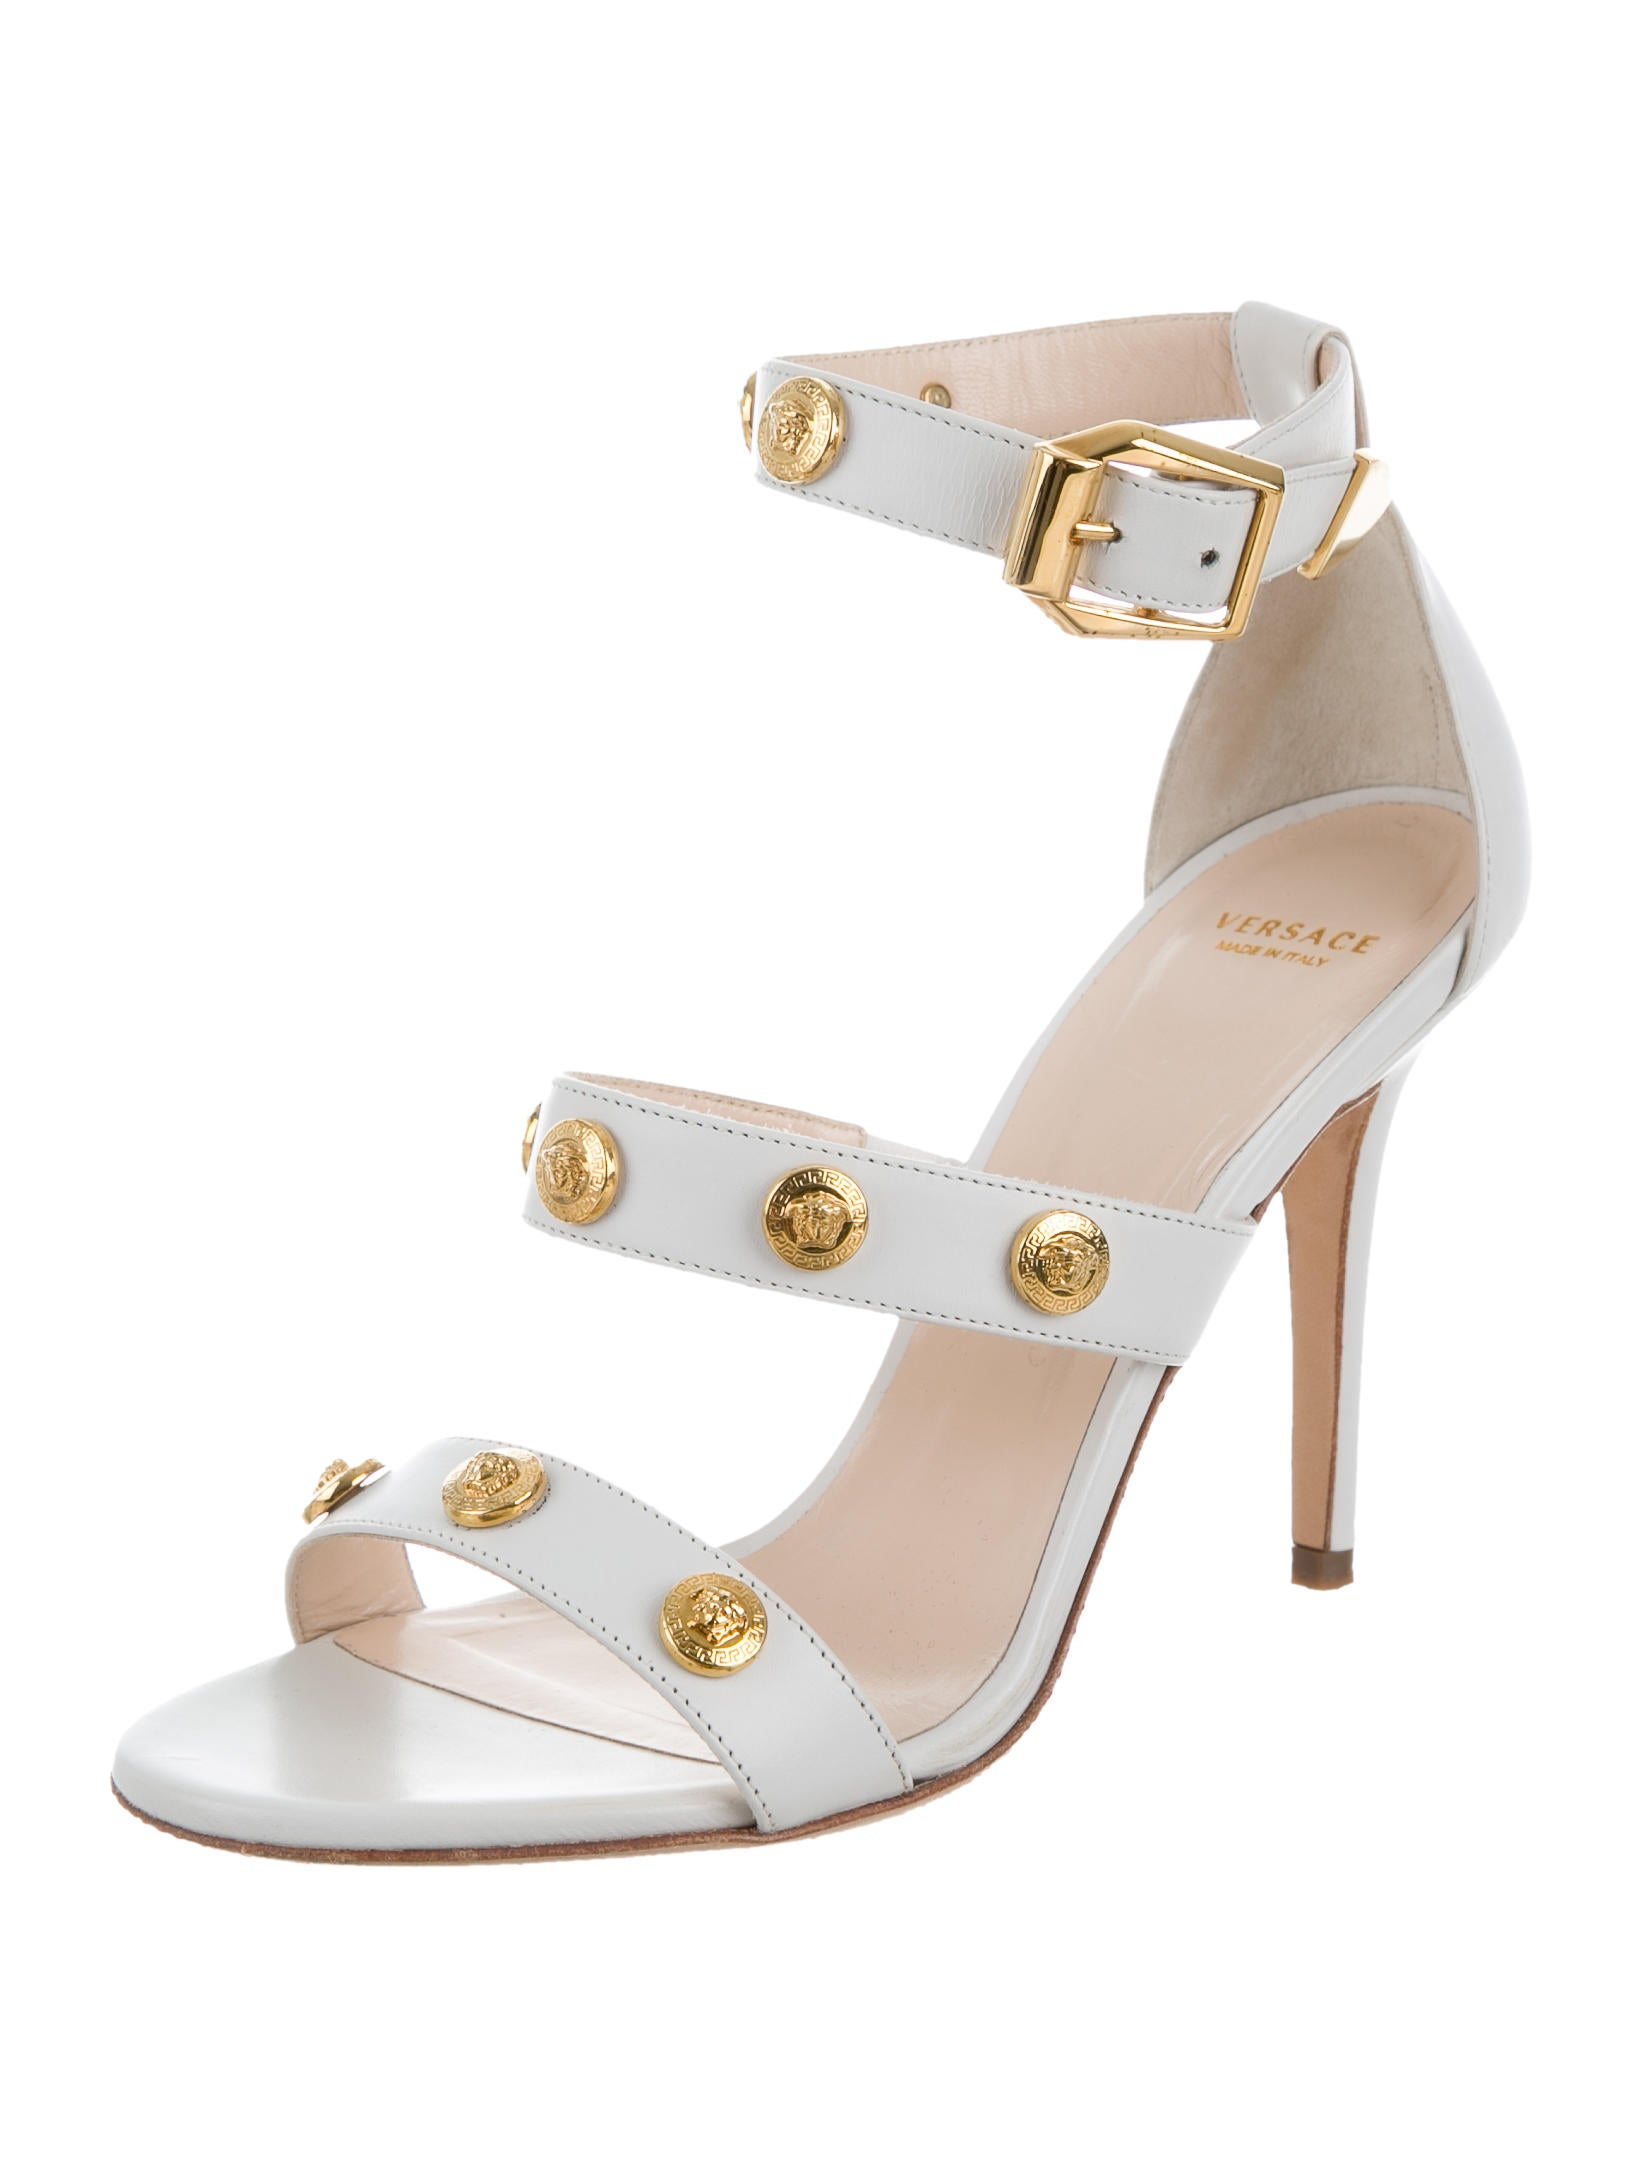 Versace Leather Medusa Sandals - Shoes - VES29541 | The RealReal